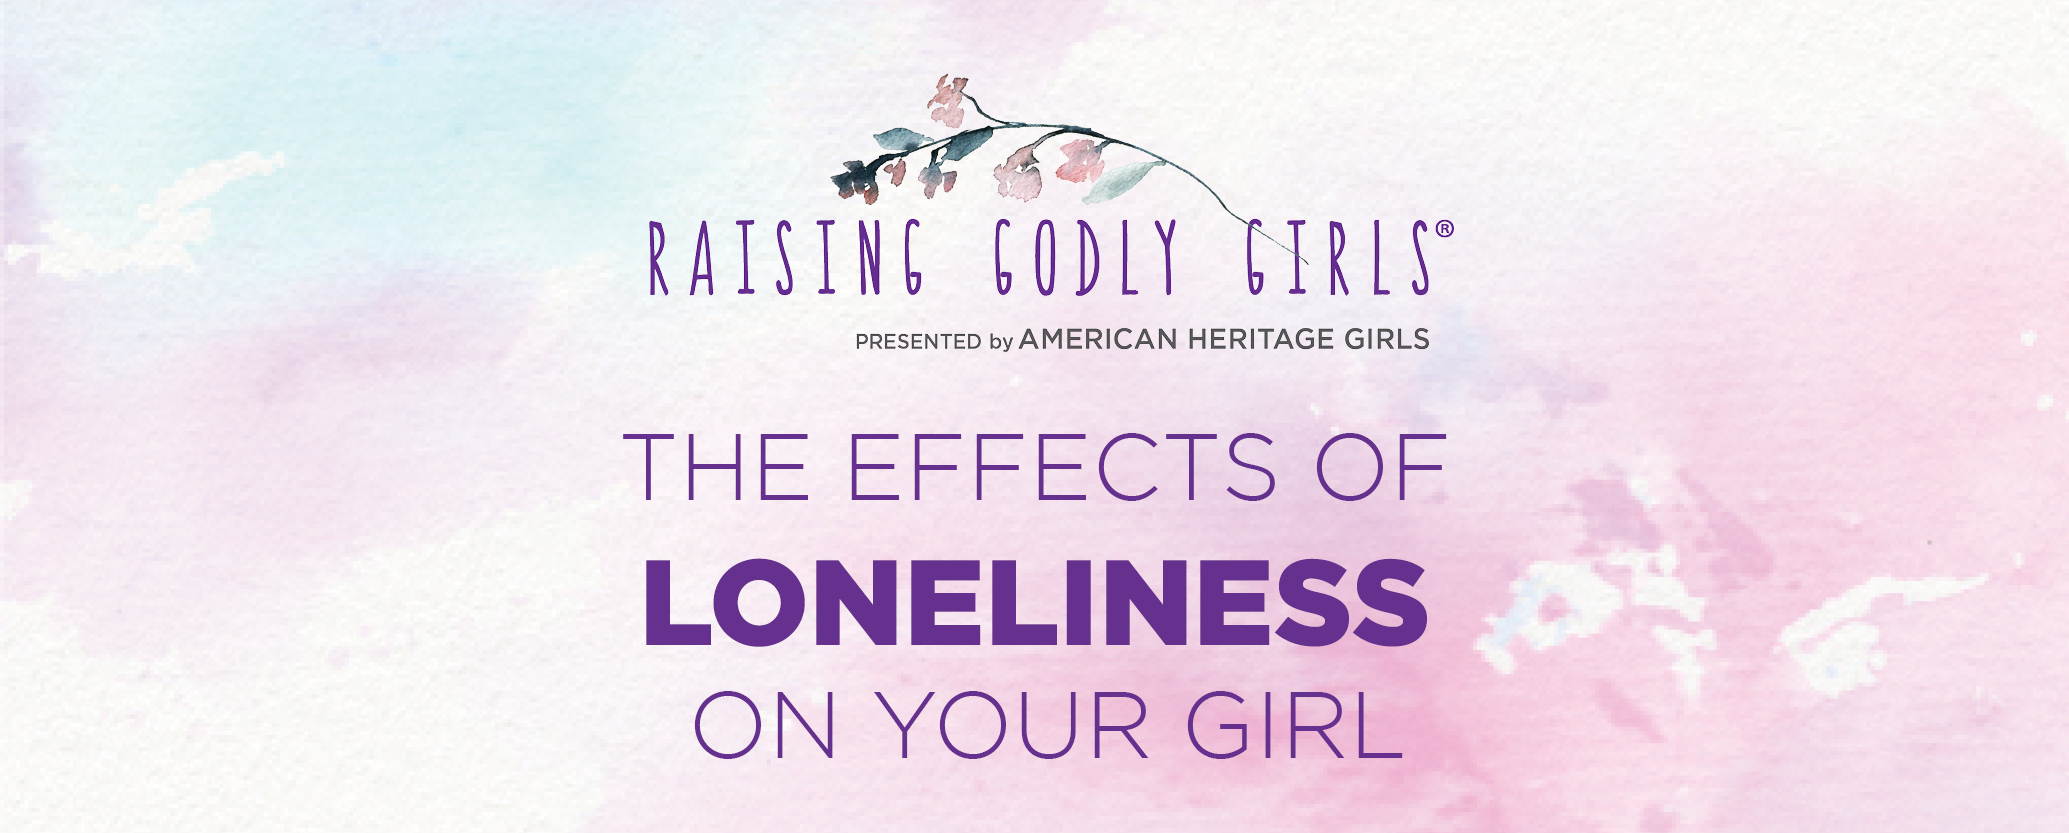 The effects of loneliness on your girl raising godly girls blog